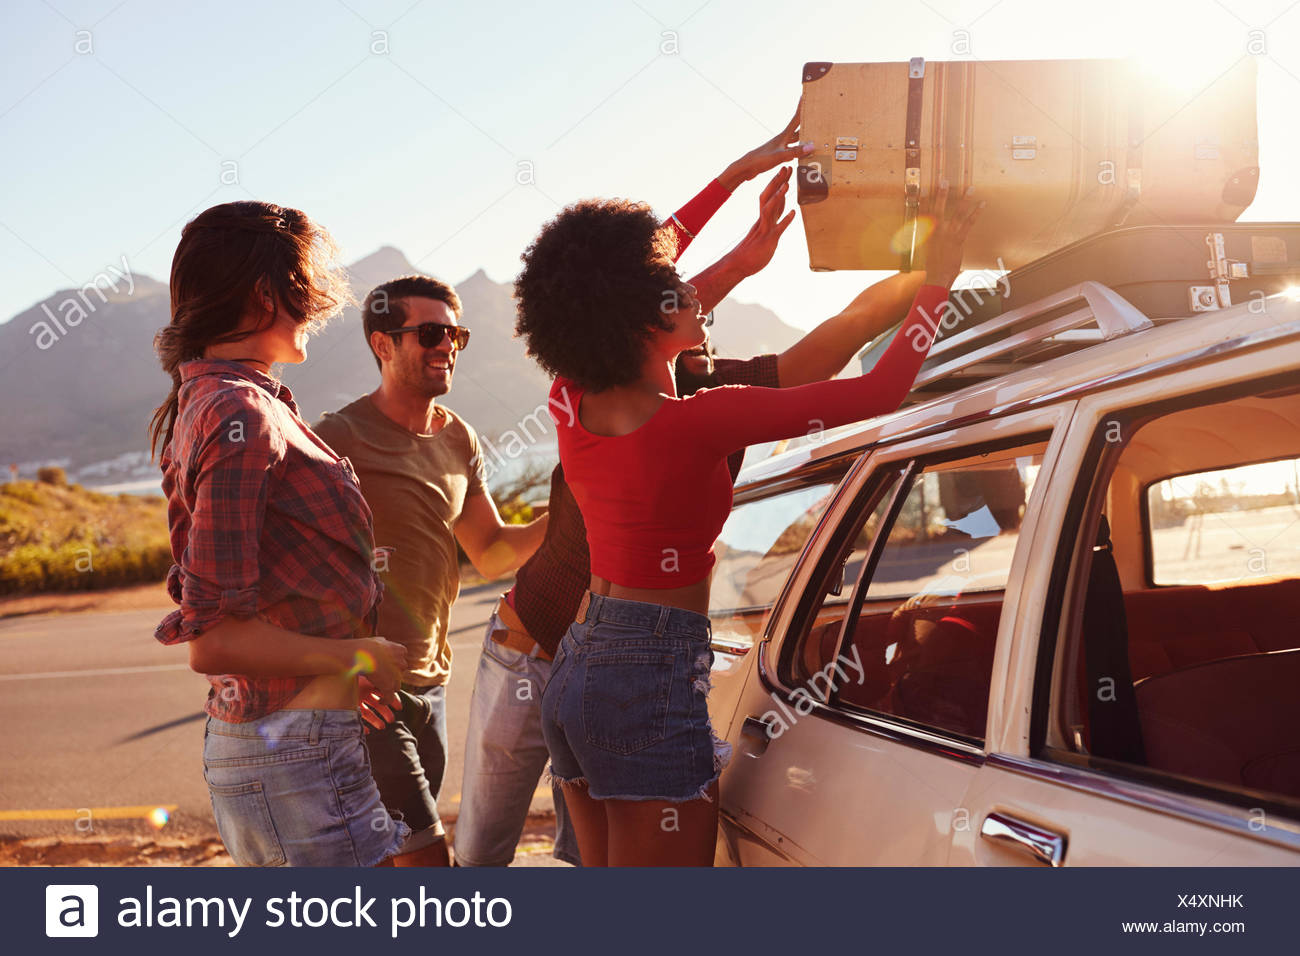 Friends Loading Luggage Onto Car Roof Rack Ready For Road Trip Stock Photo Alamy